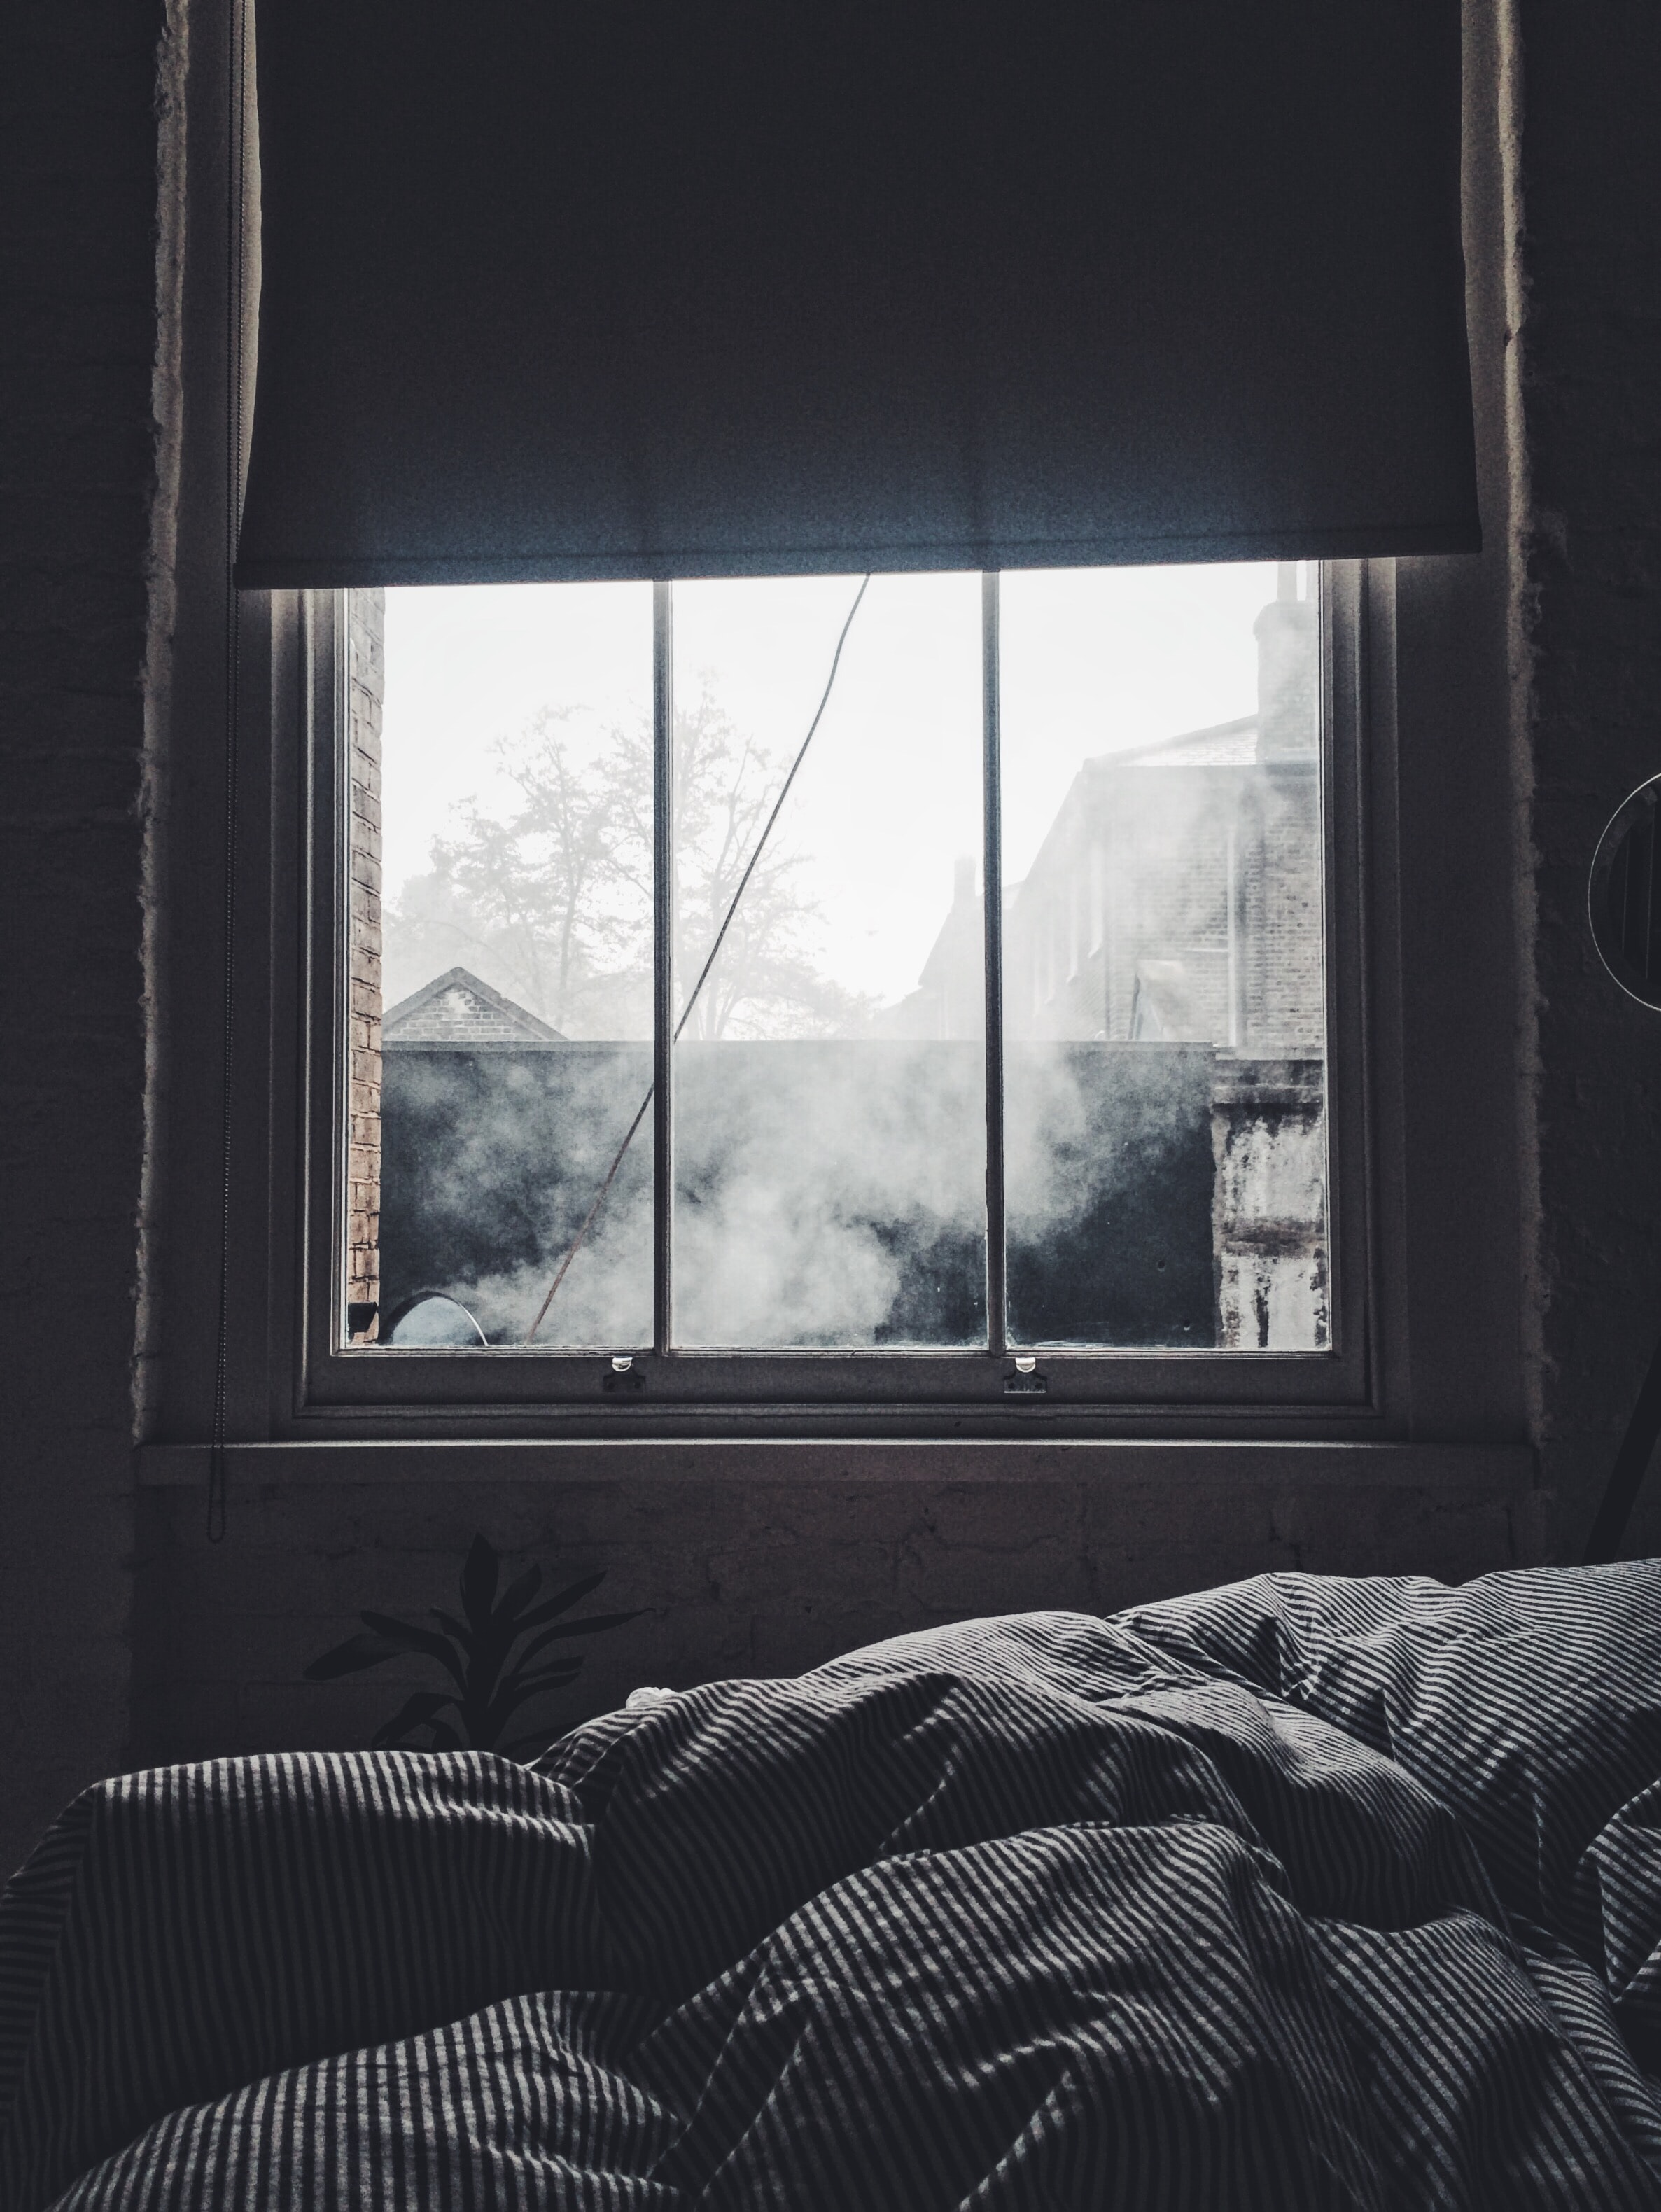 Interior of a bedroom with a blanket and a window showing smoke and other houses outside